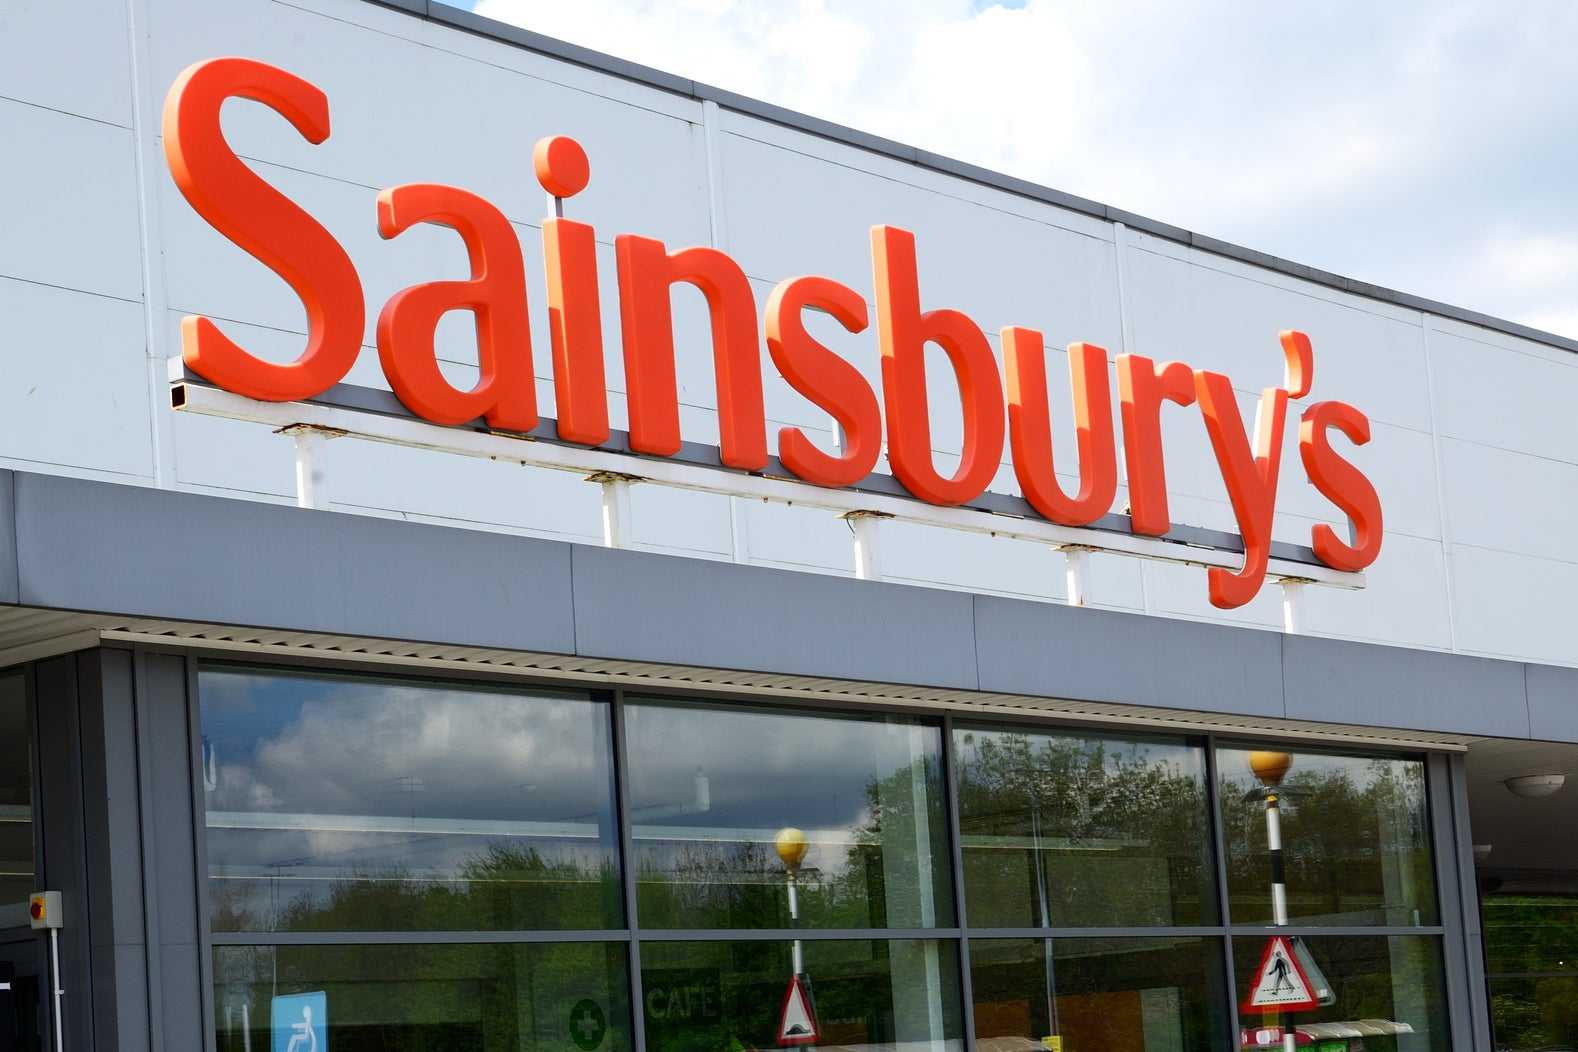 Sainbury's announces an interim dividend of 3.2p, in line with policy of paying 30 per cent of prior full year dividend